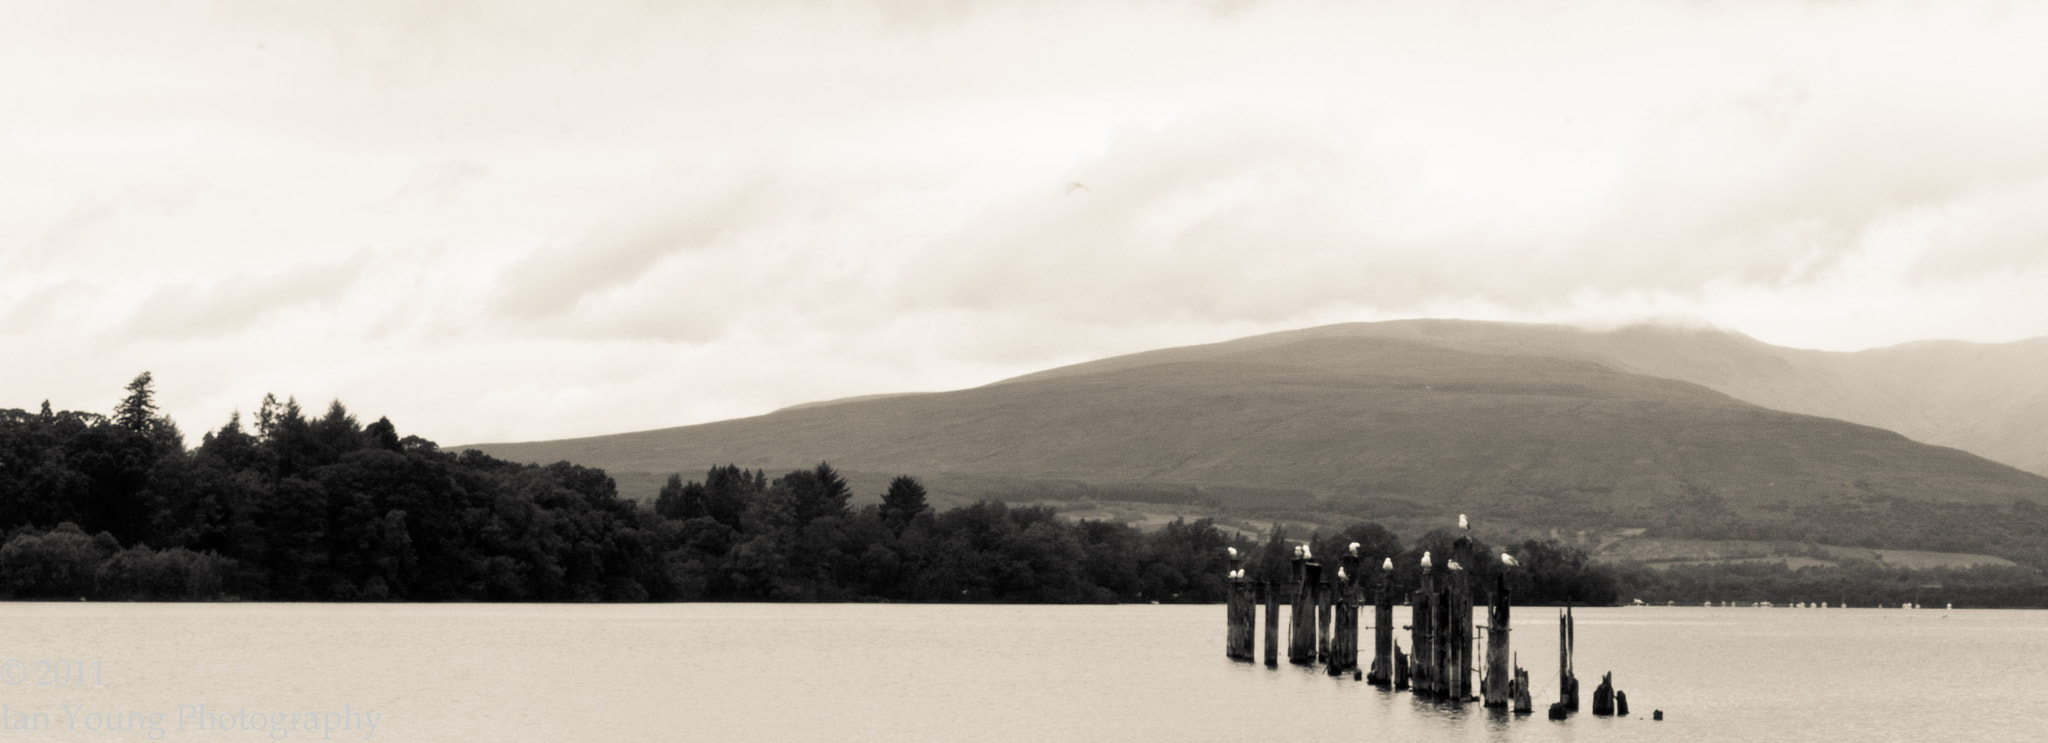 Photograph Loch Lomond Shores by Ian Young on 500px